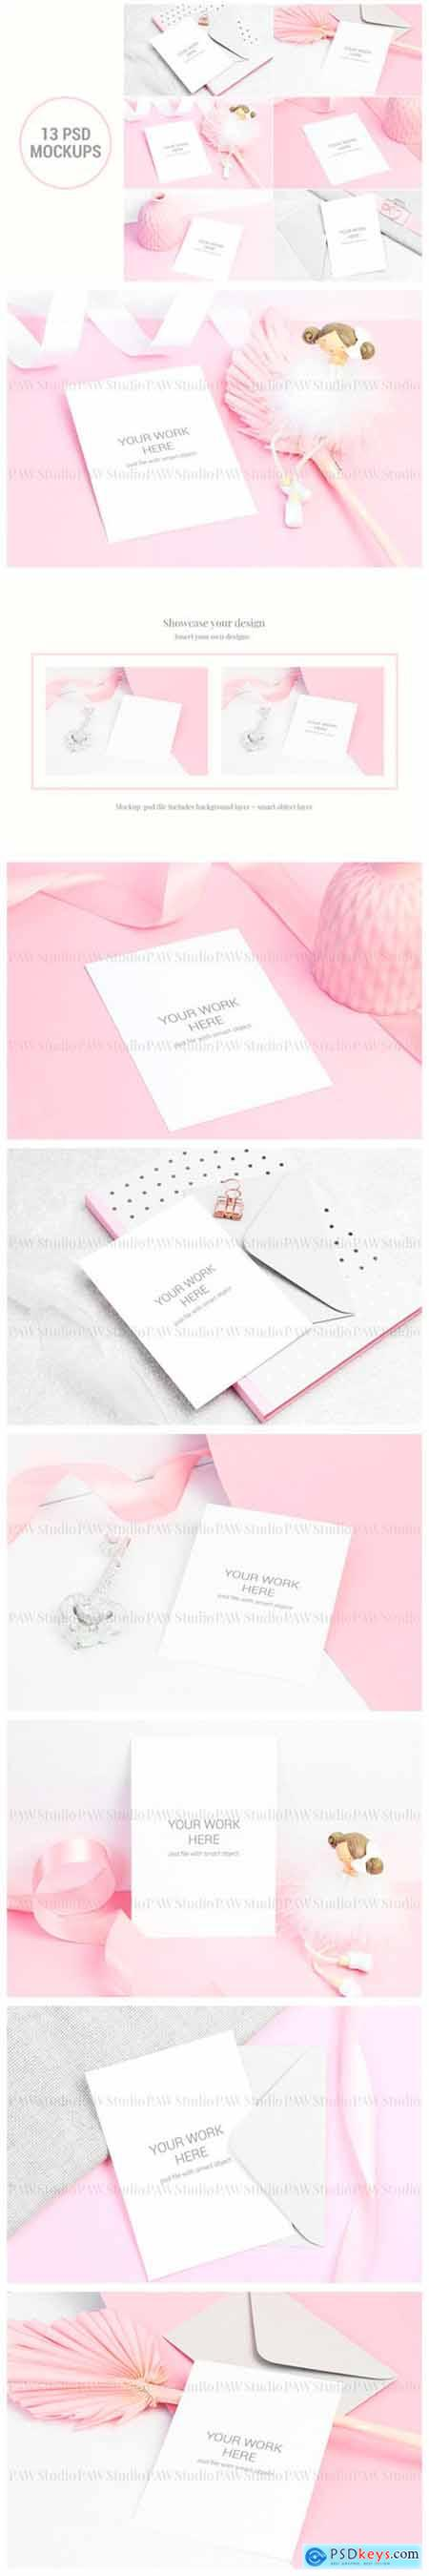 Set of Invitation Card Mockup 2545461